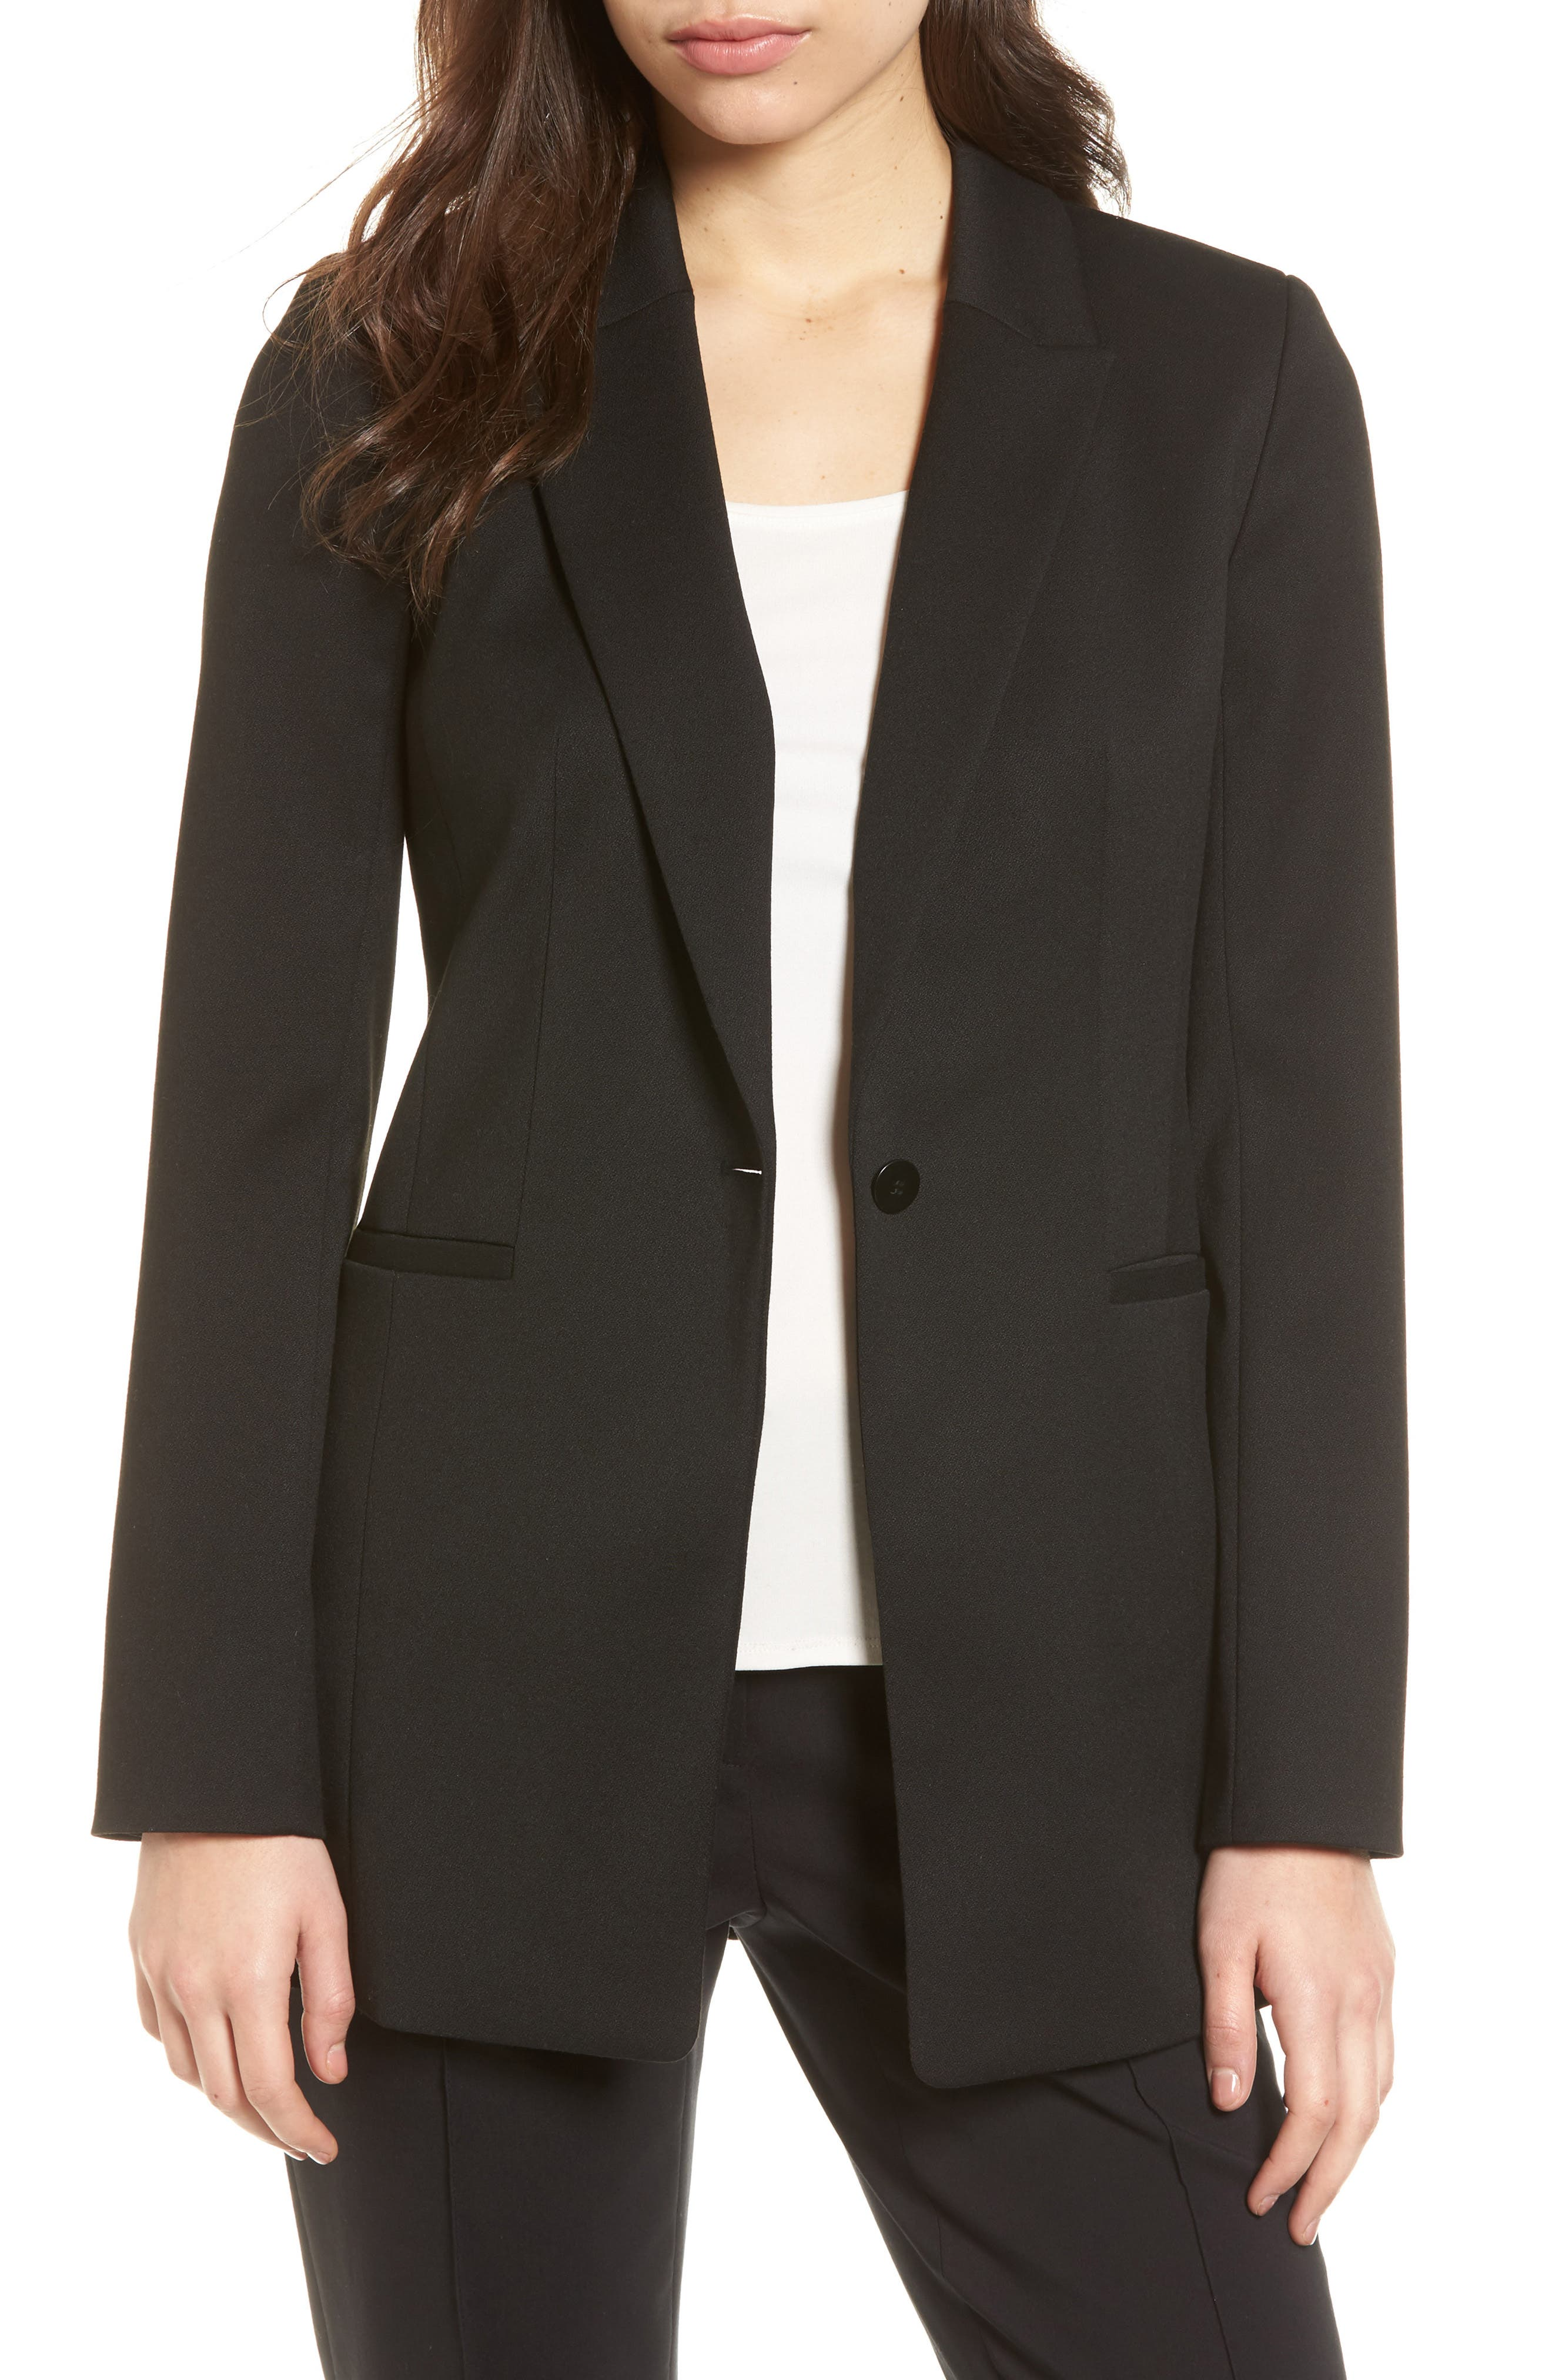 Emerson Rose Stretch Crepe Suit Jacket